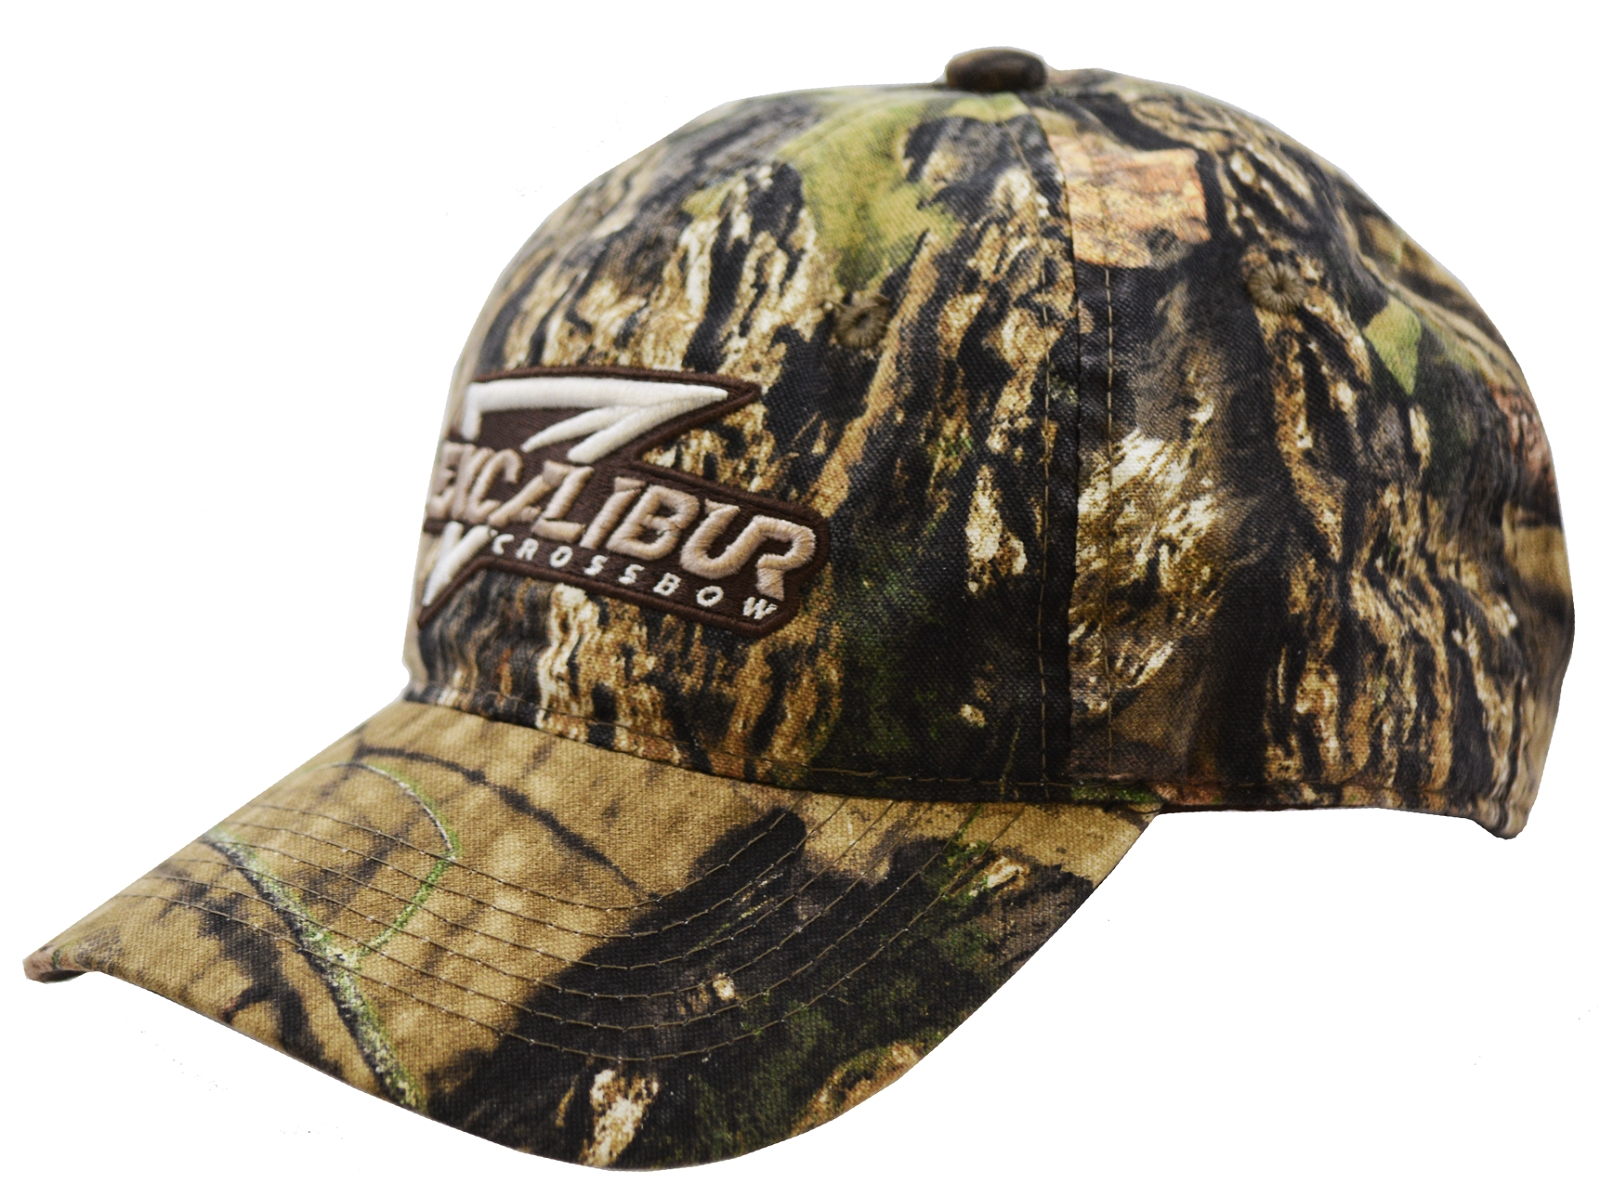 Excalibur Camo Cap New Breakup